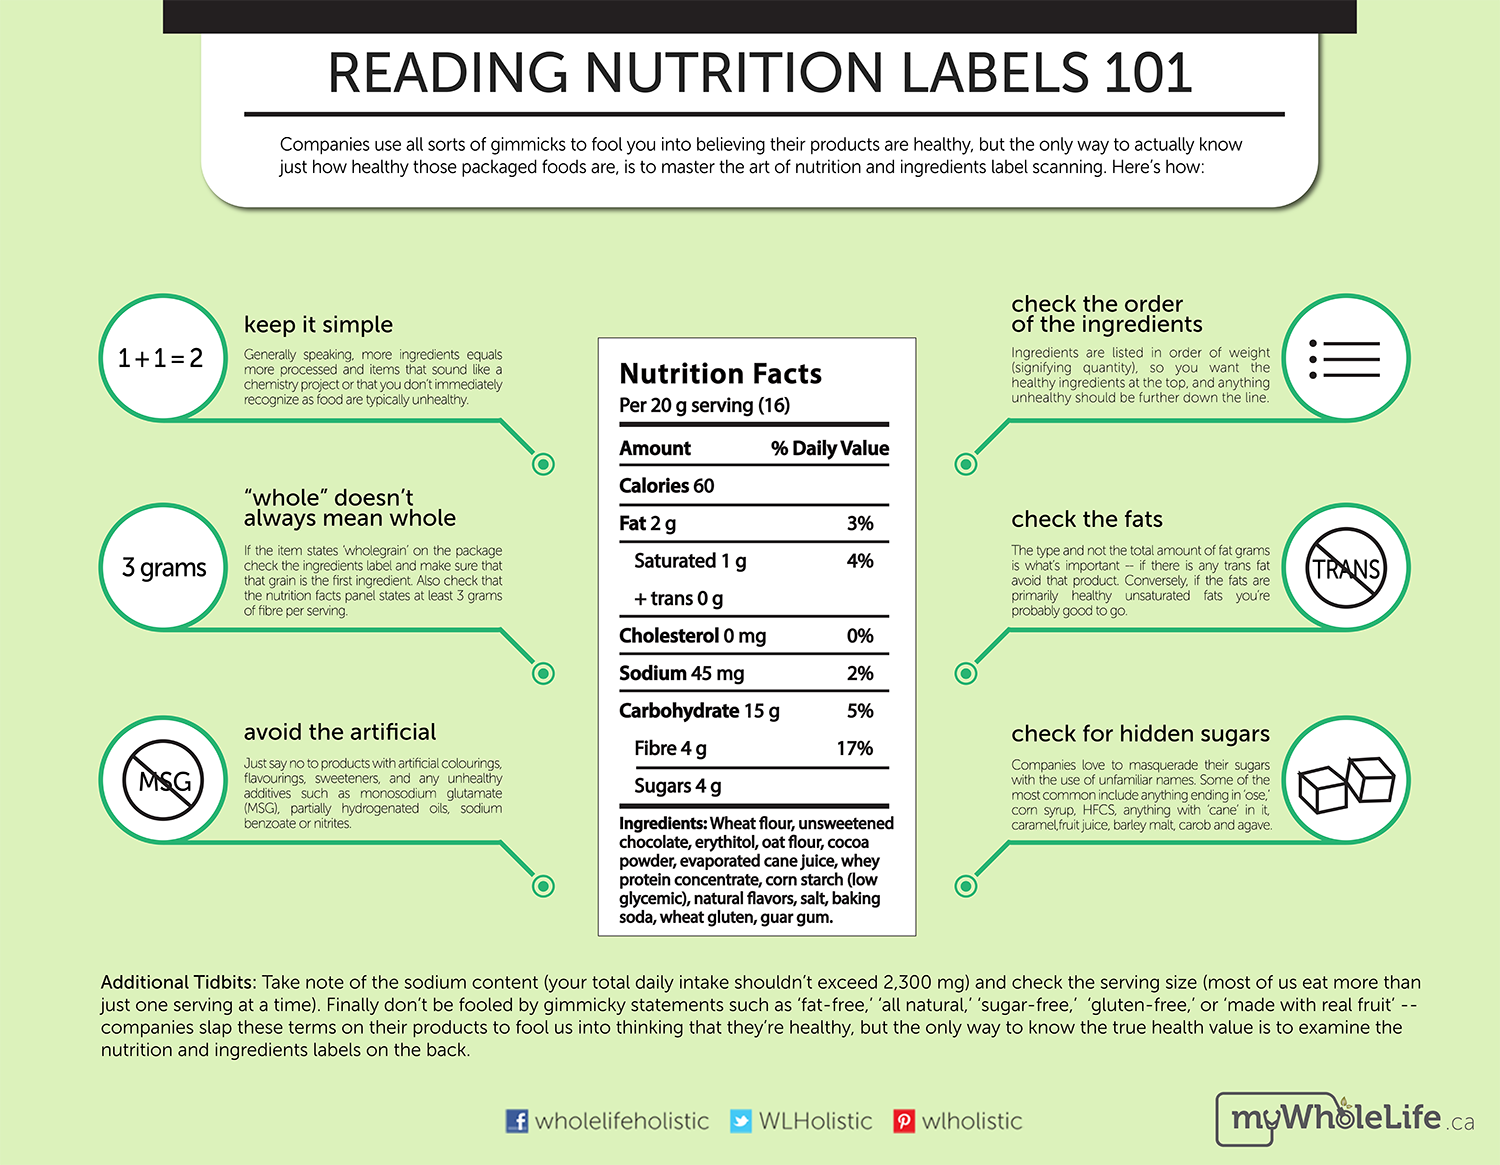 Reading Nutrition Labels 101